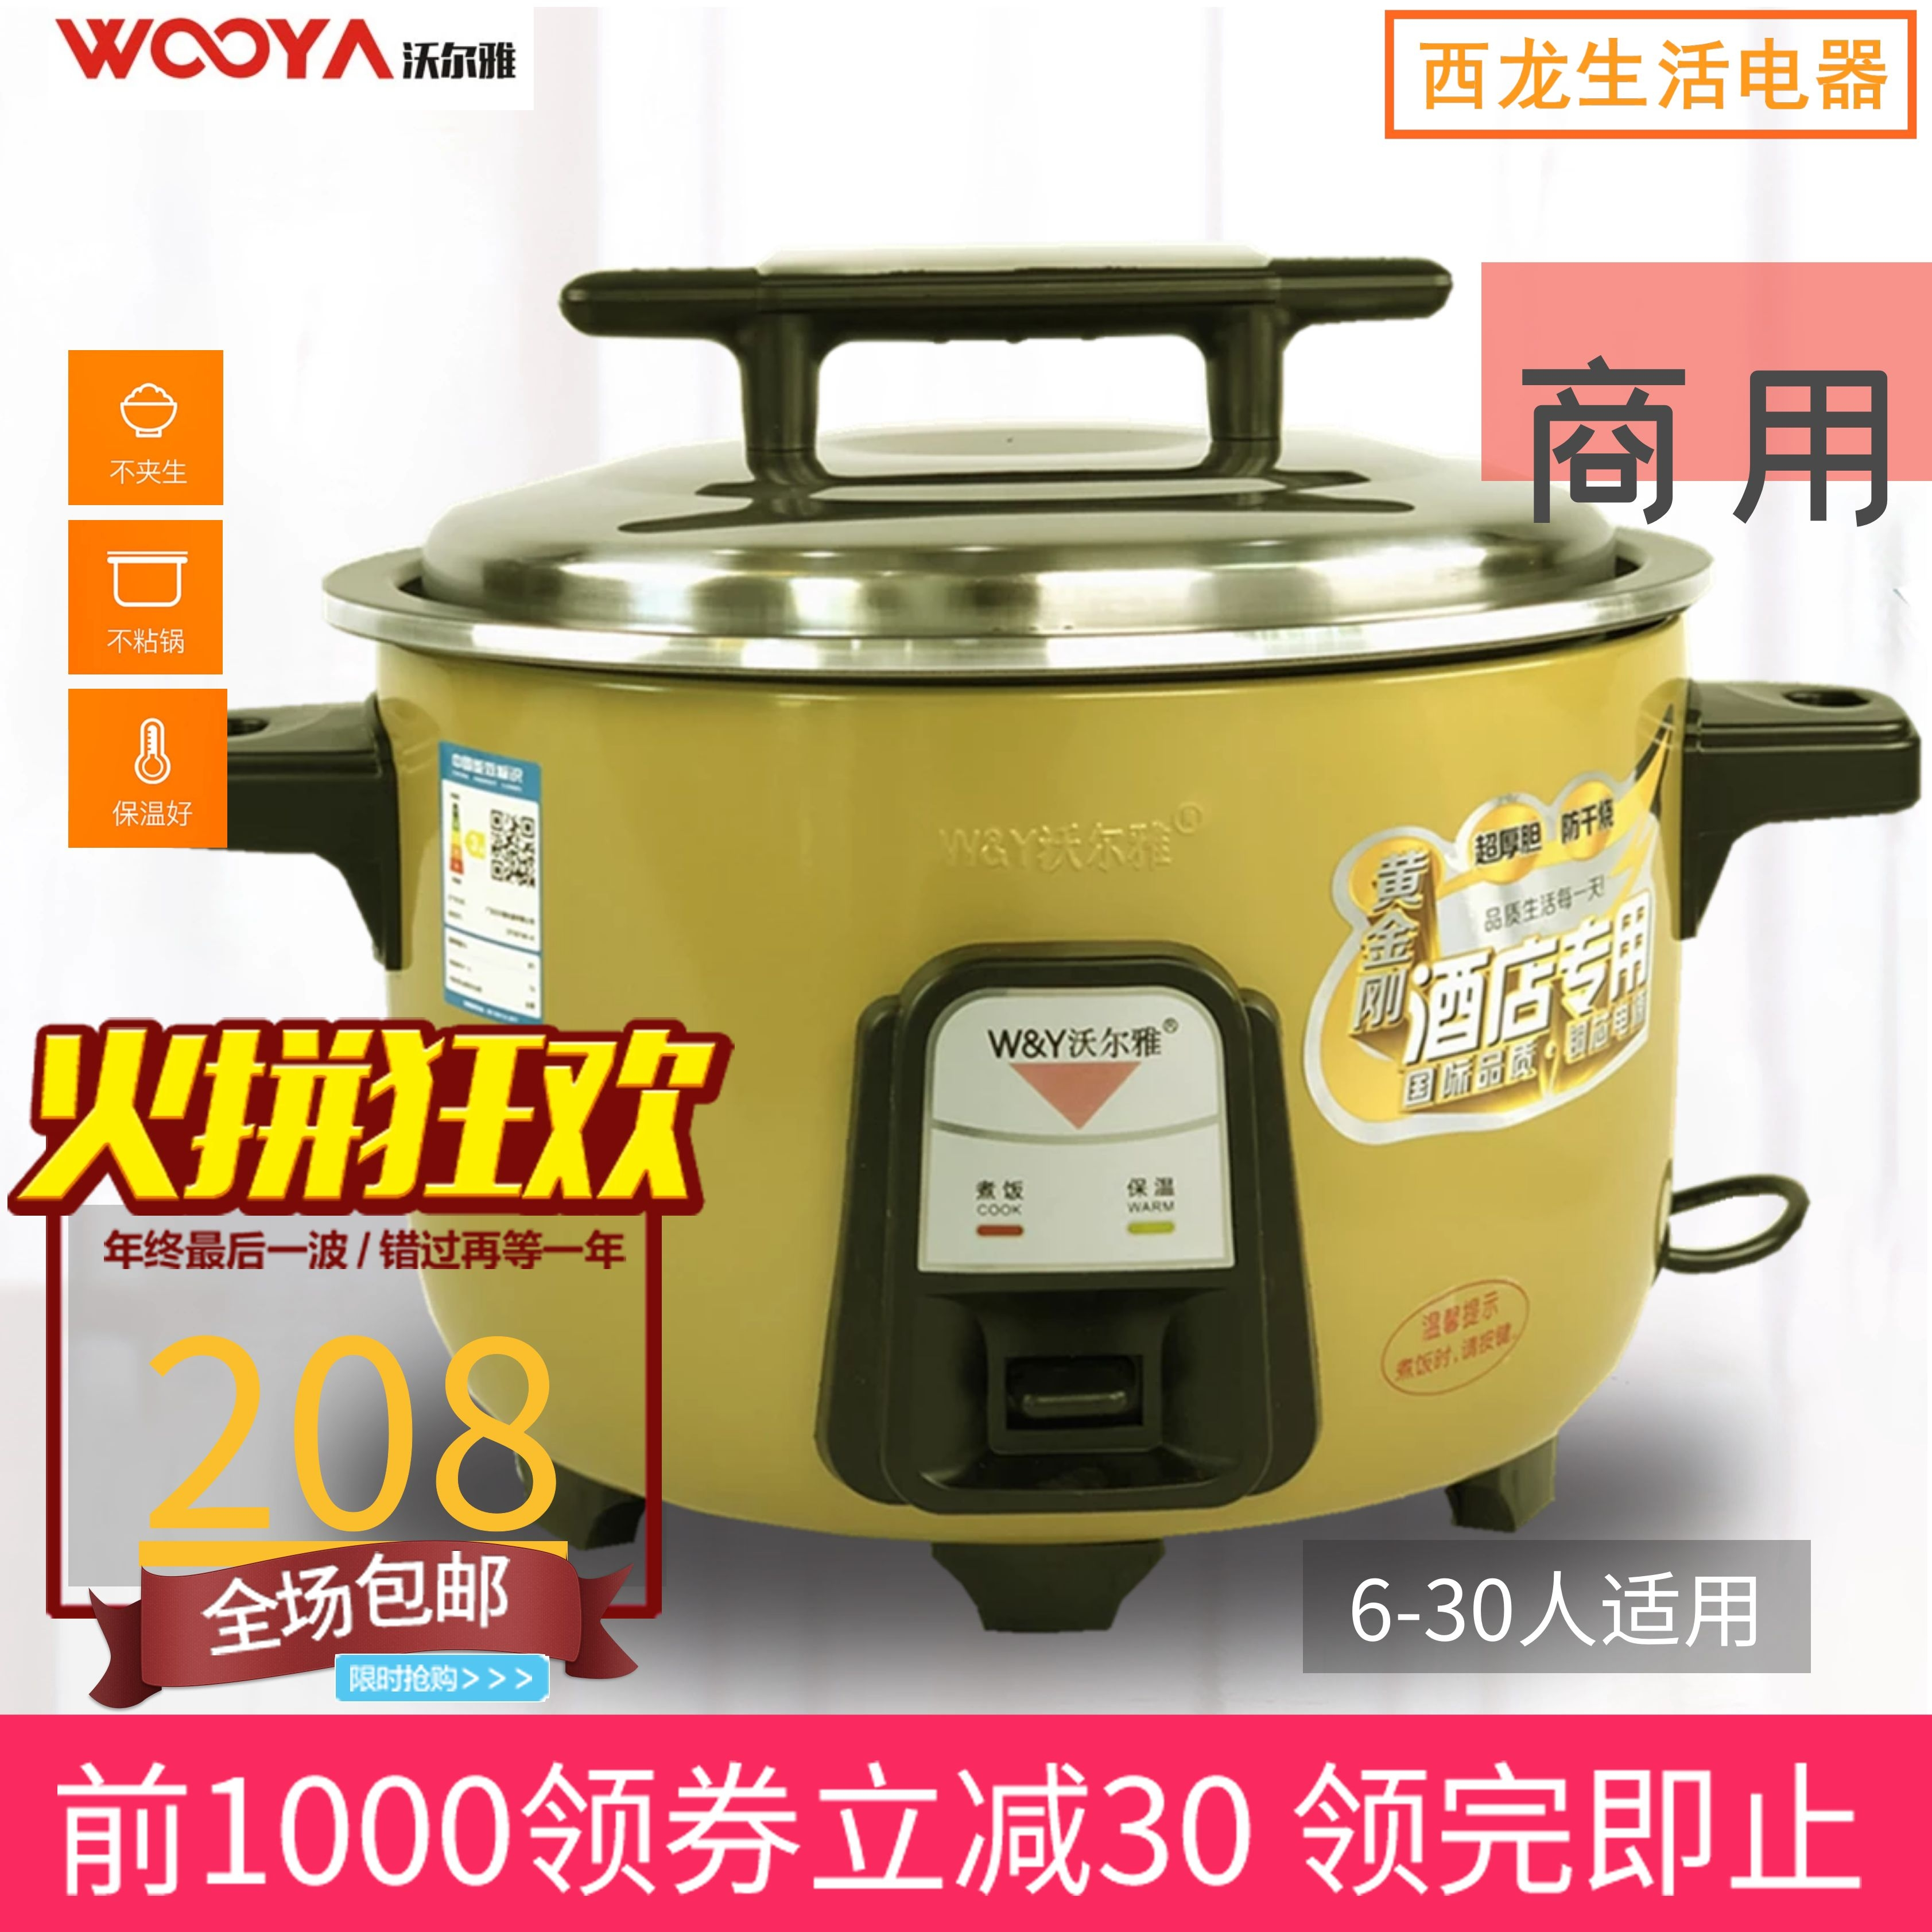 Volya commercial rice cooker large capacity 8l10l13l15l19l23l38 liter hotel canteen stall shop